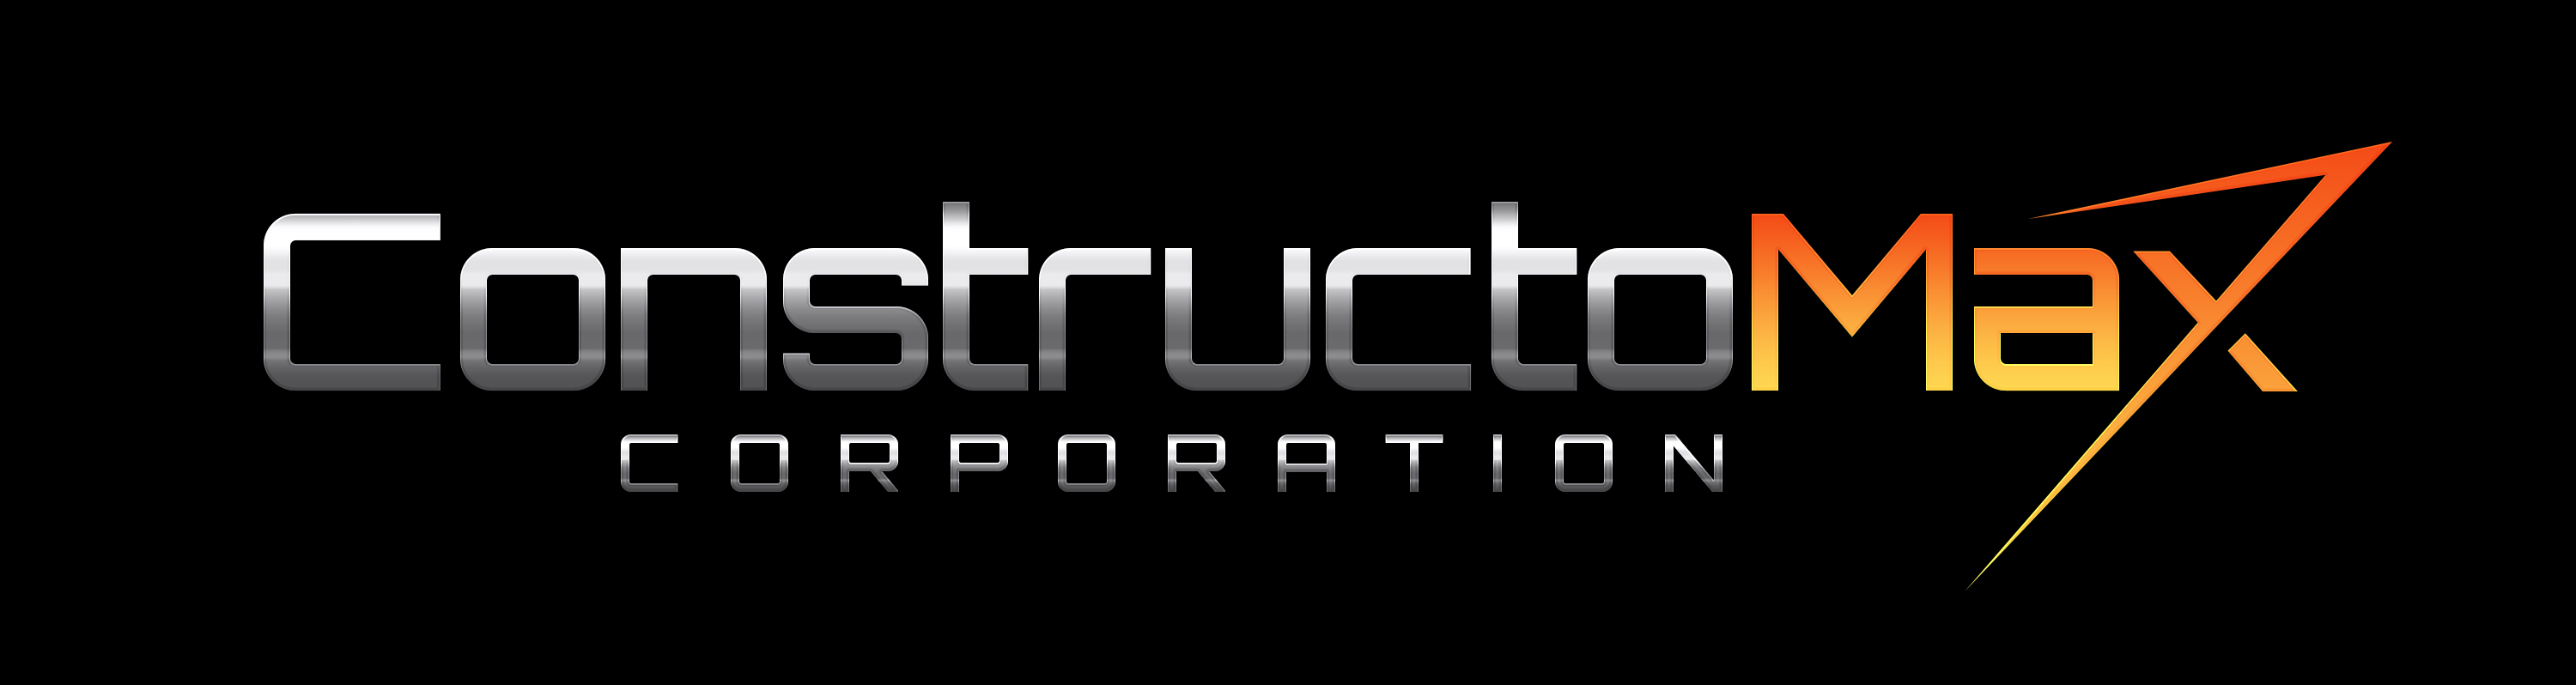 ConstructoMax Corporation Roofing Tampa